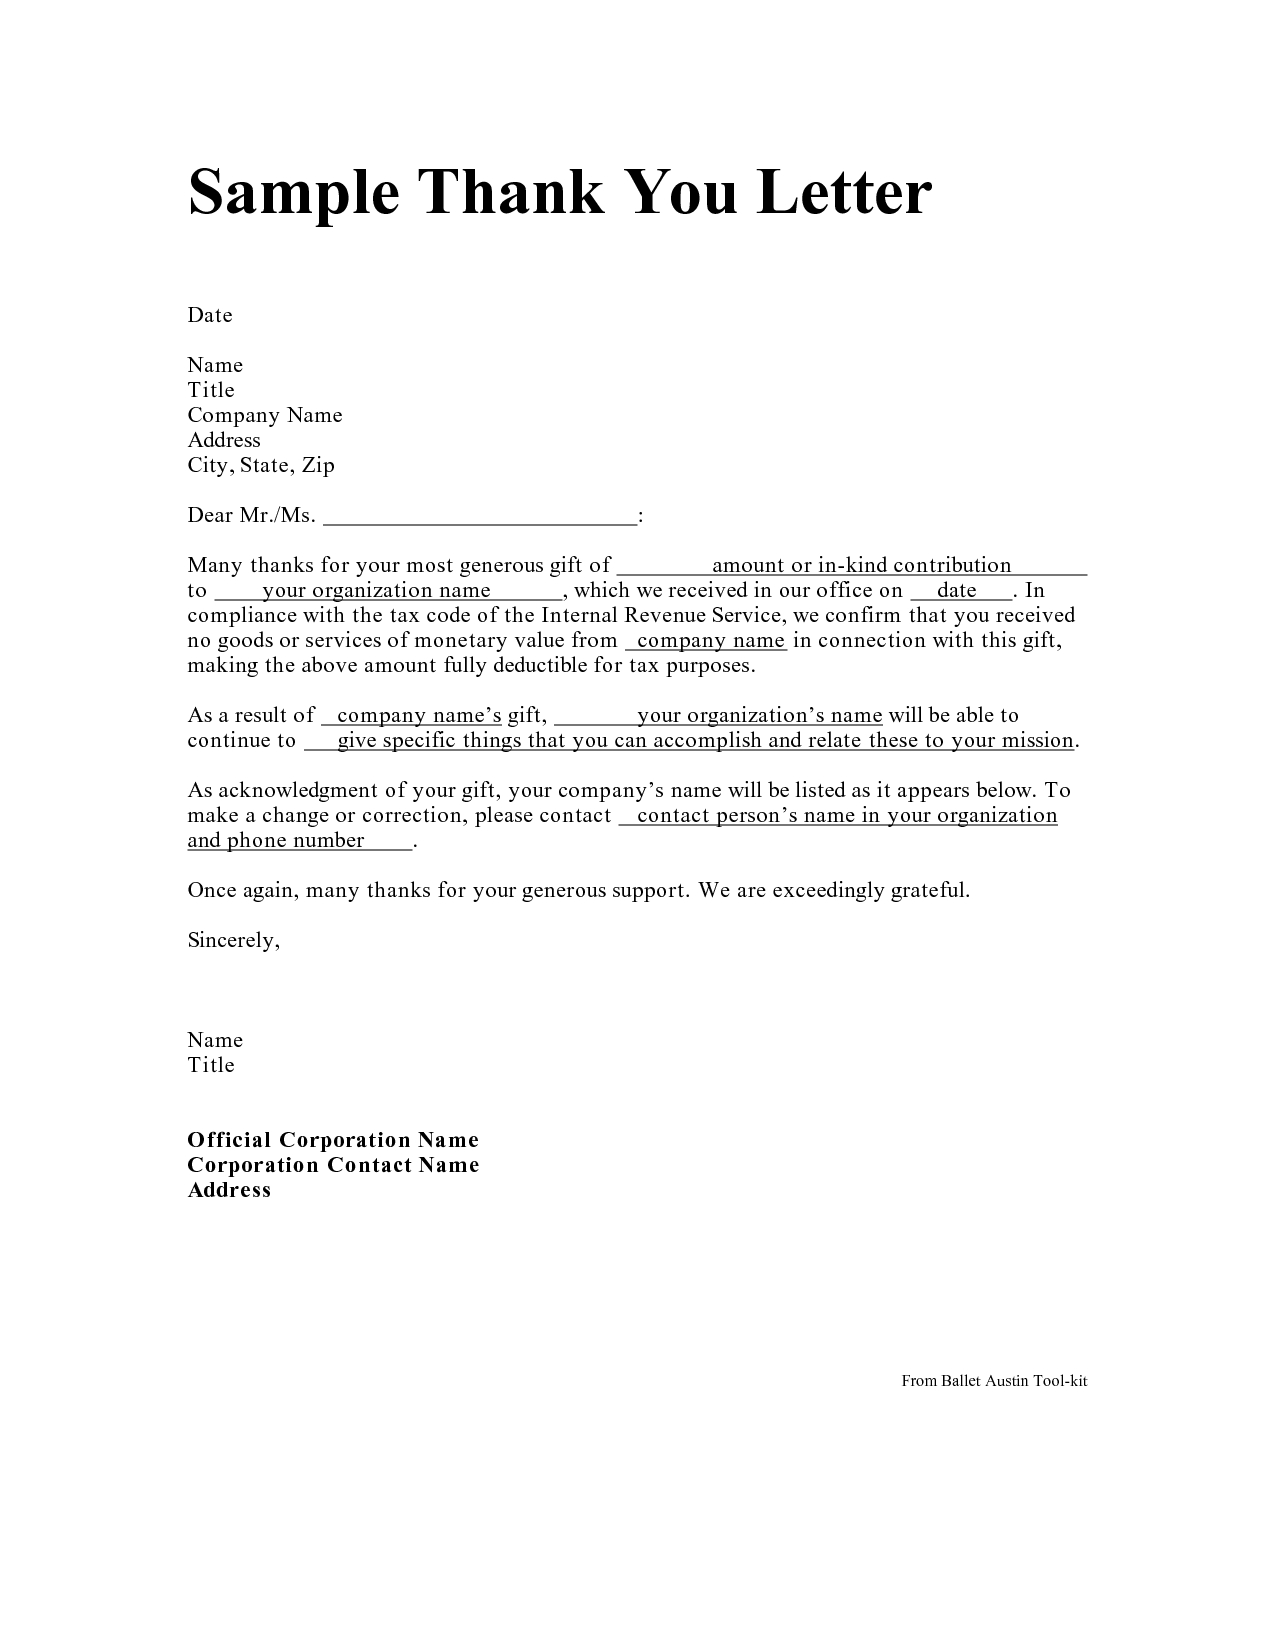 Thank You for Your Donation Letter Template - Personal Thank You Letter Personal Thank You Letter